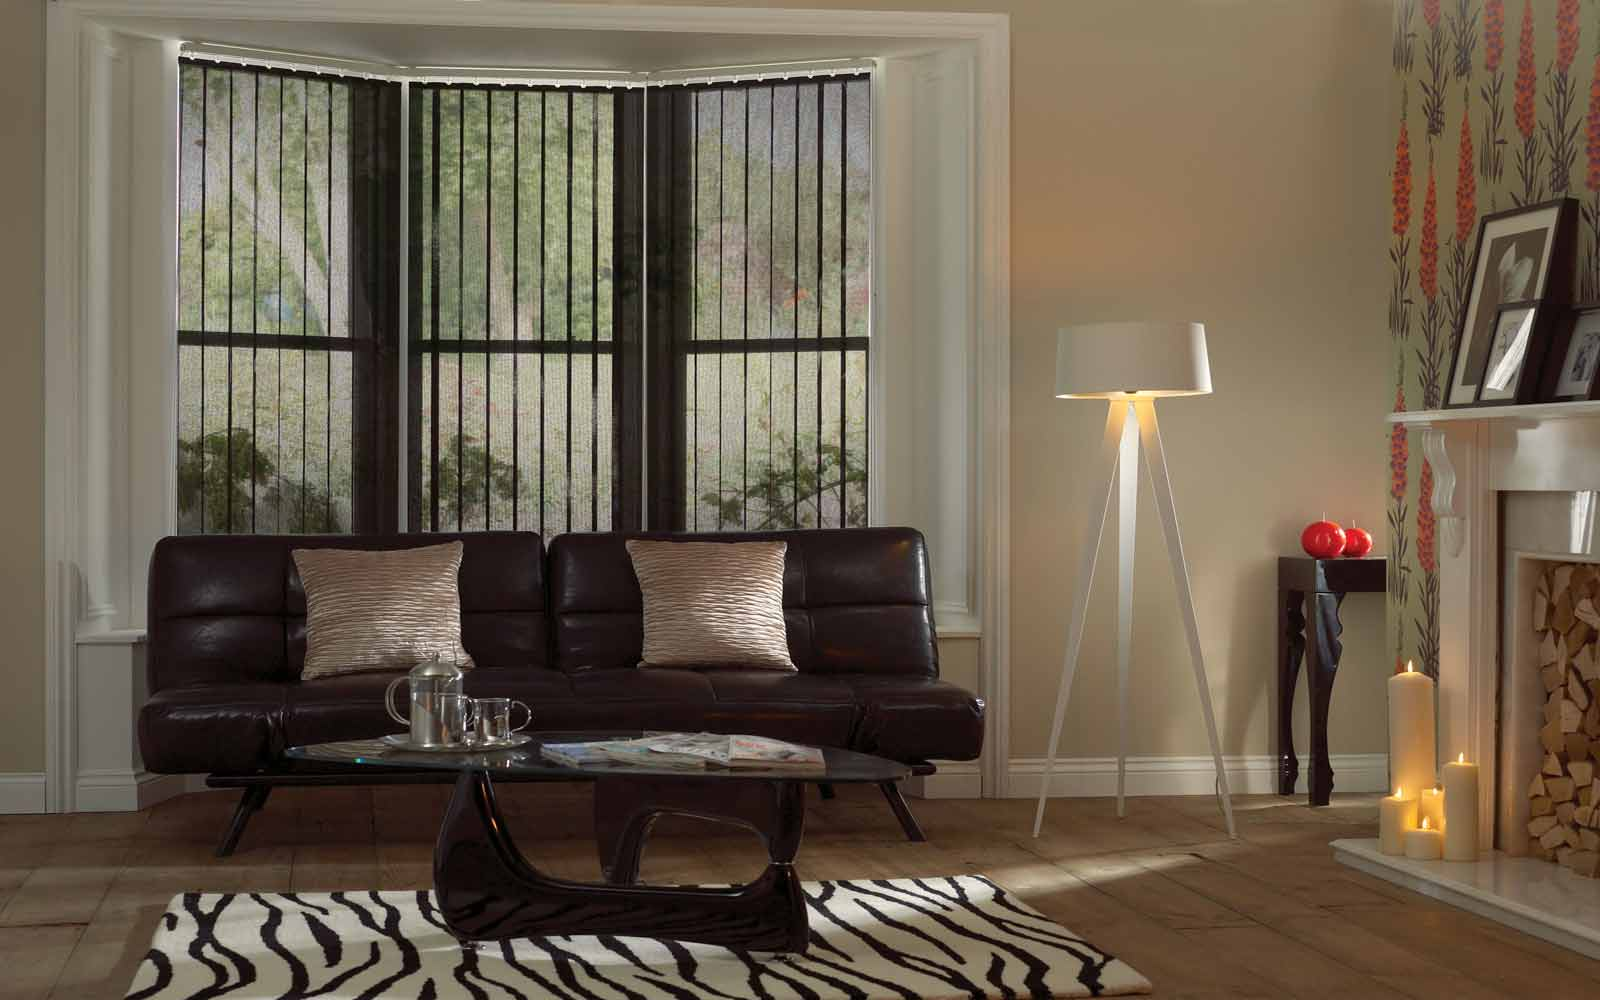 Voile Vertical Blinds in a bay